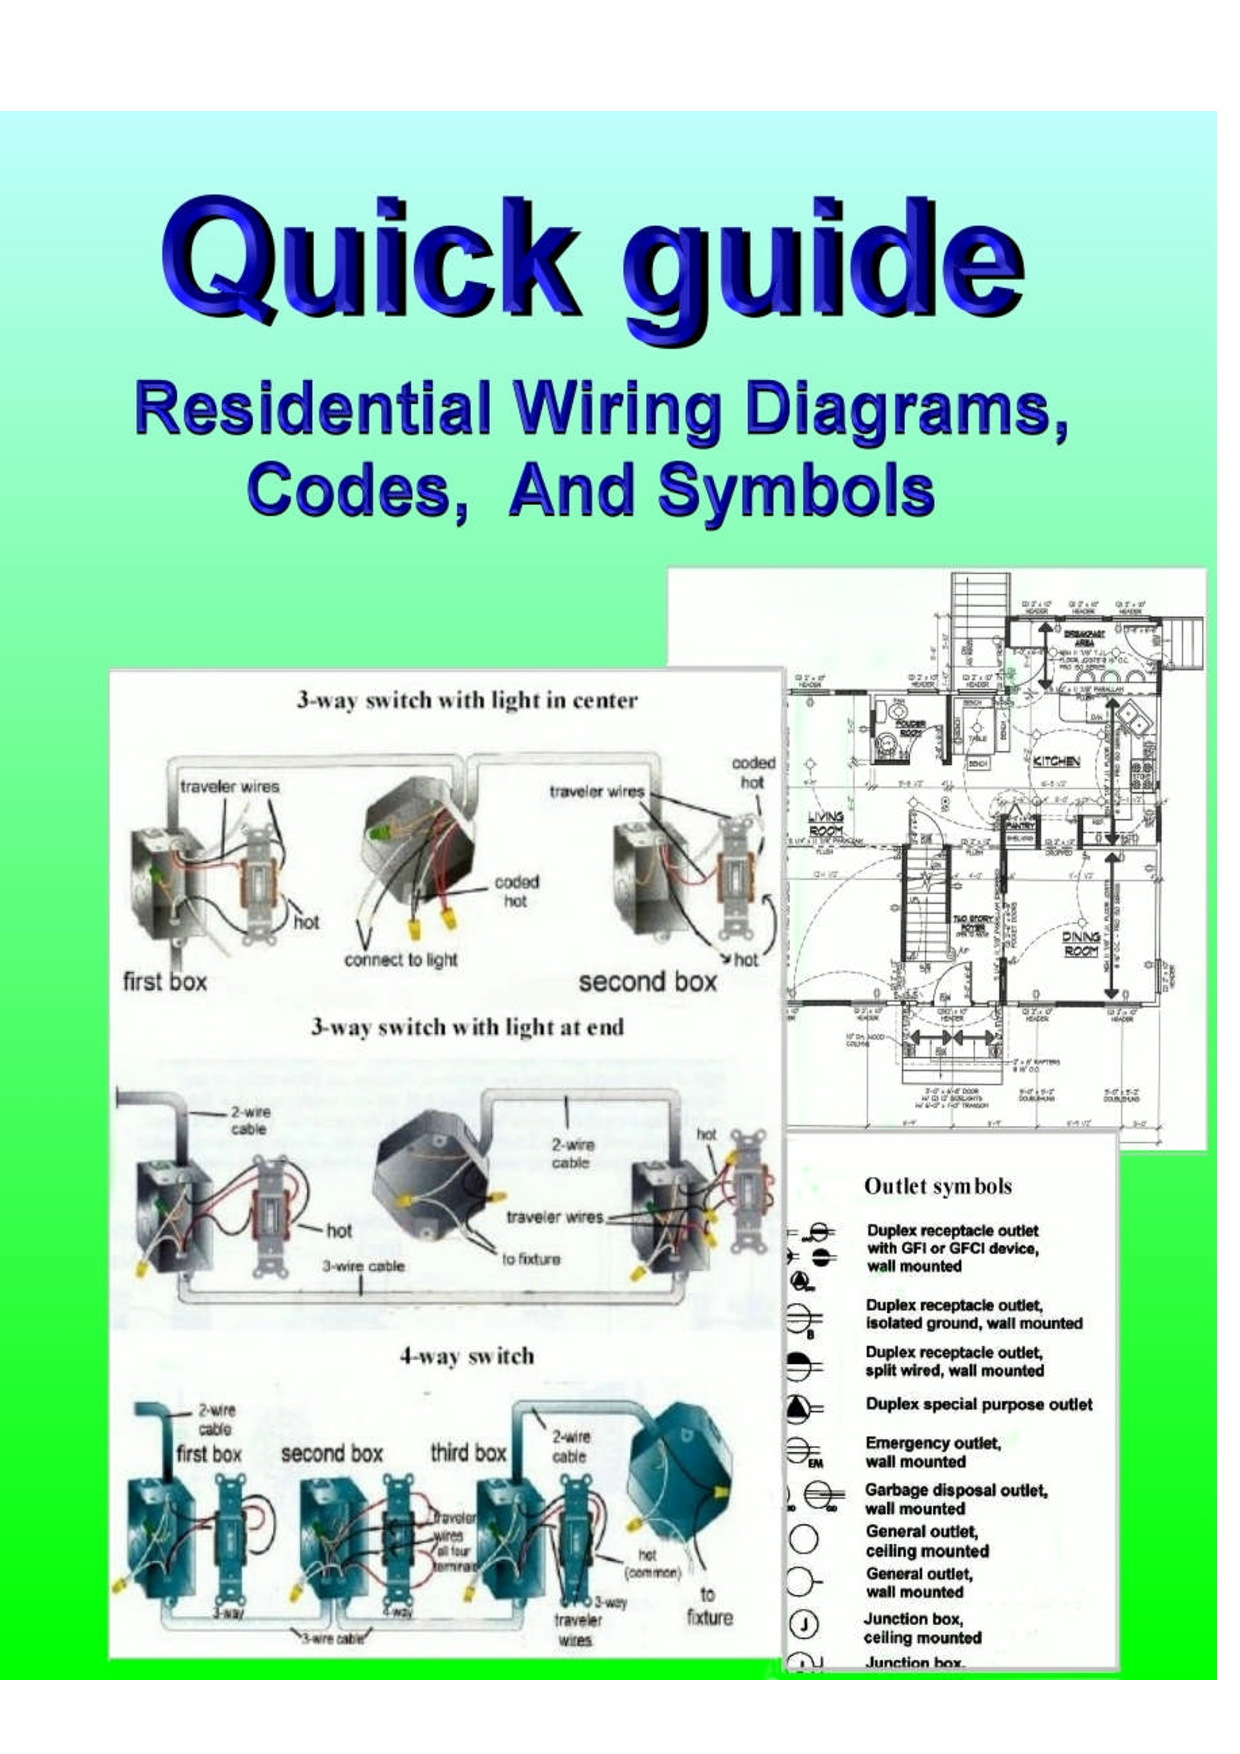 small resolution of a step by step home wiring guide with diagrams symbols and electrical codes